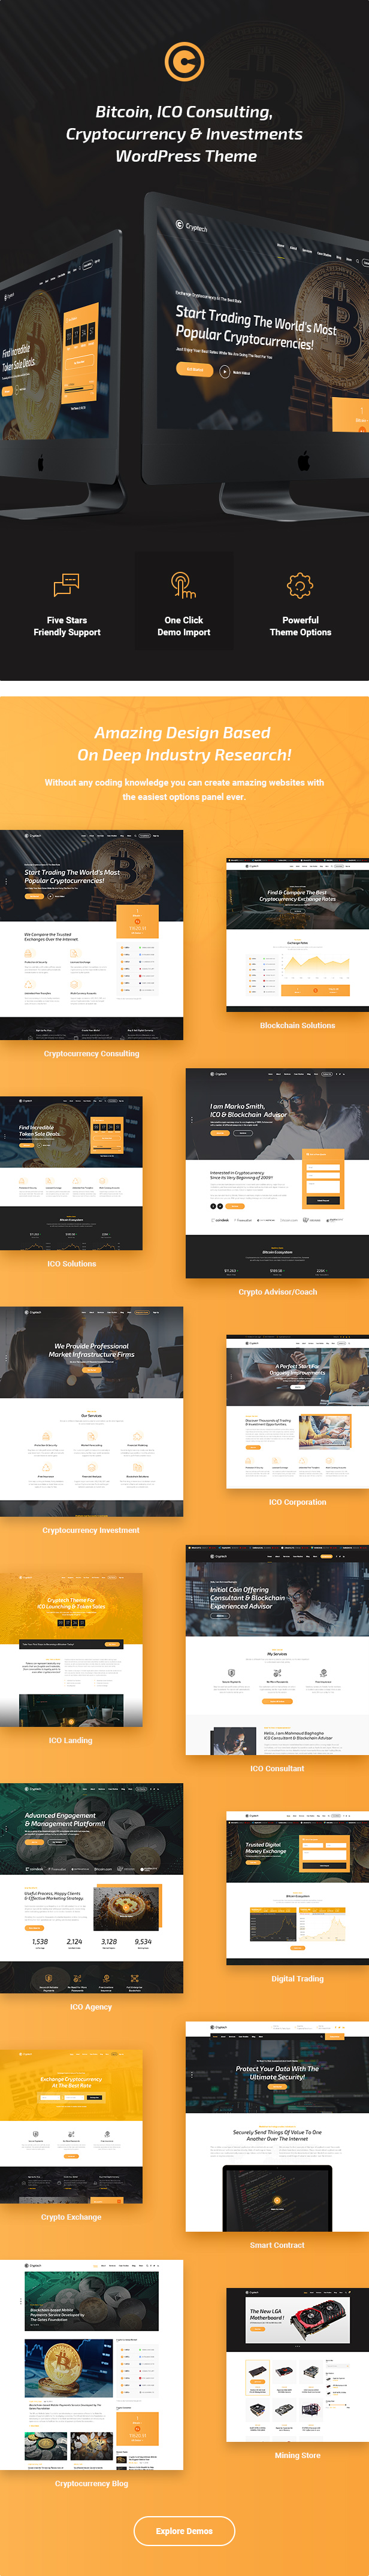 Cryptech - ICO and Cryptocurrency WordPress Theme - 4